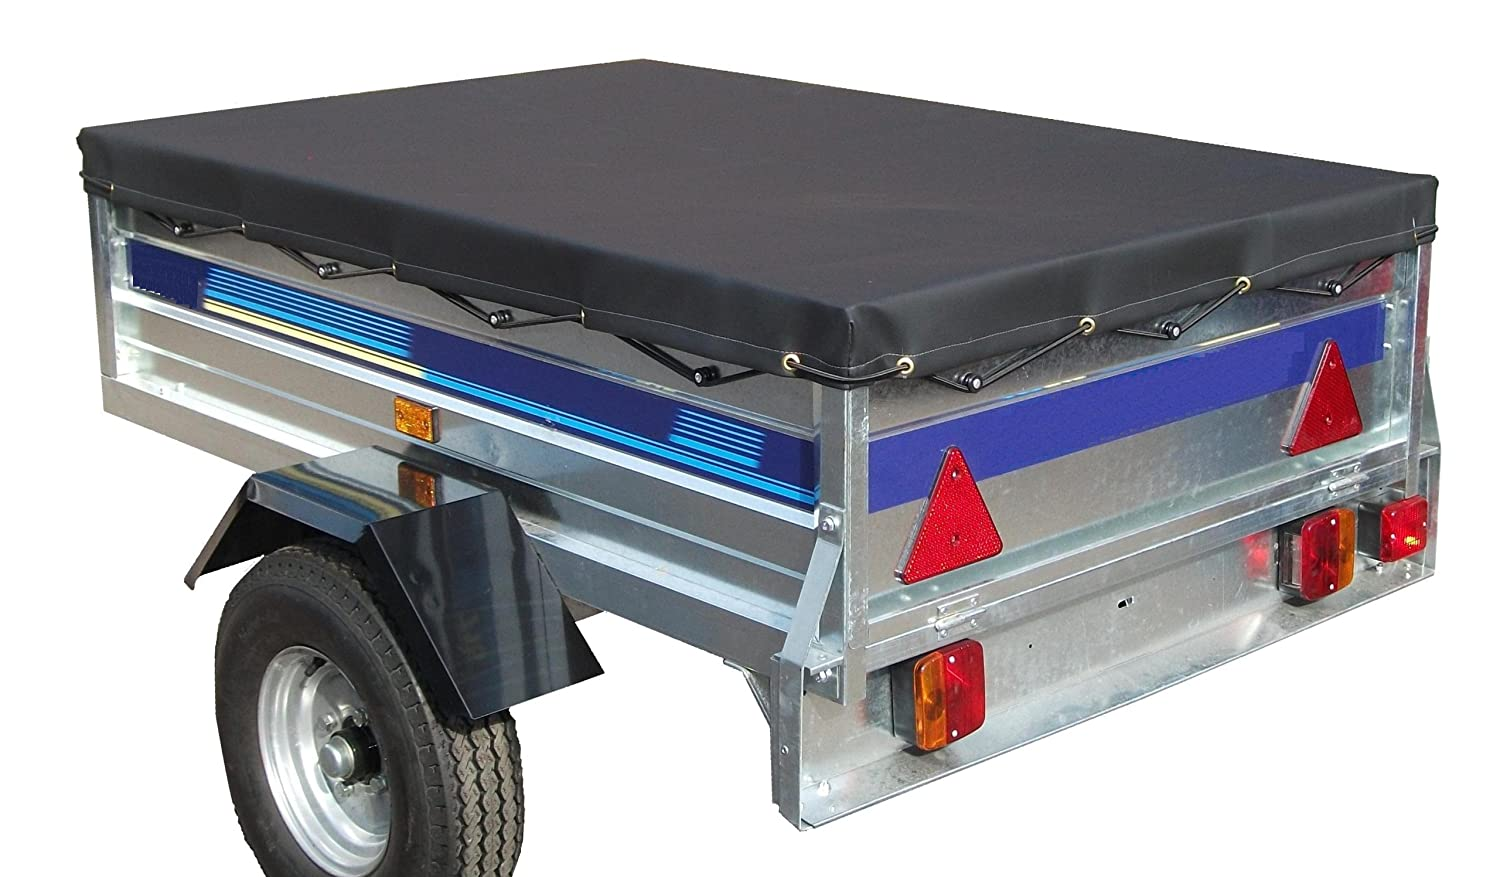 7' x 4' High quality Heavy duty 7ft x 4ft trailer cover Pt No. LMX1165. Please ensure the cover is the correct size before orderingWe suggest you measure the trailer before ordering.. Leisure Mart